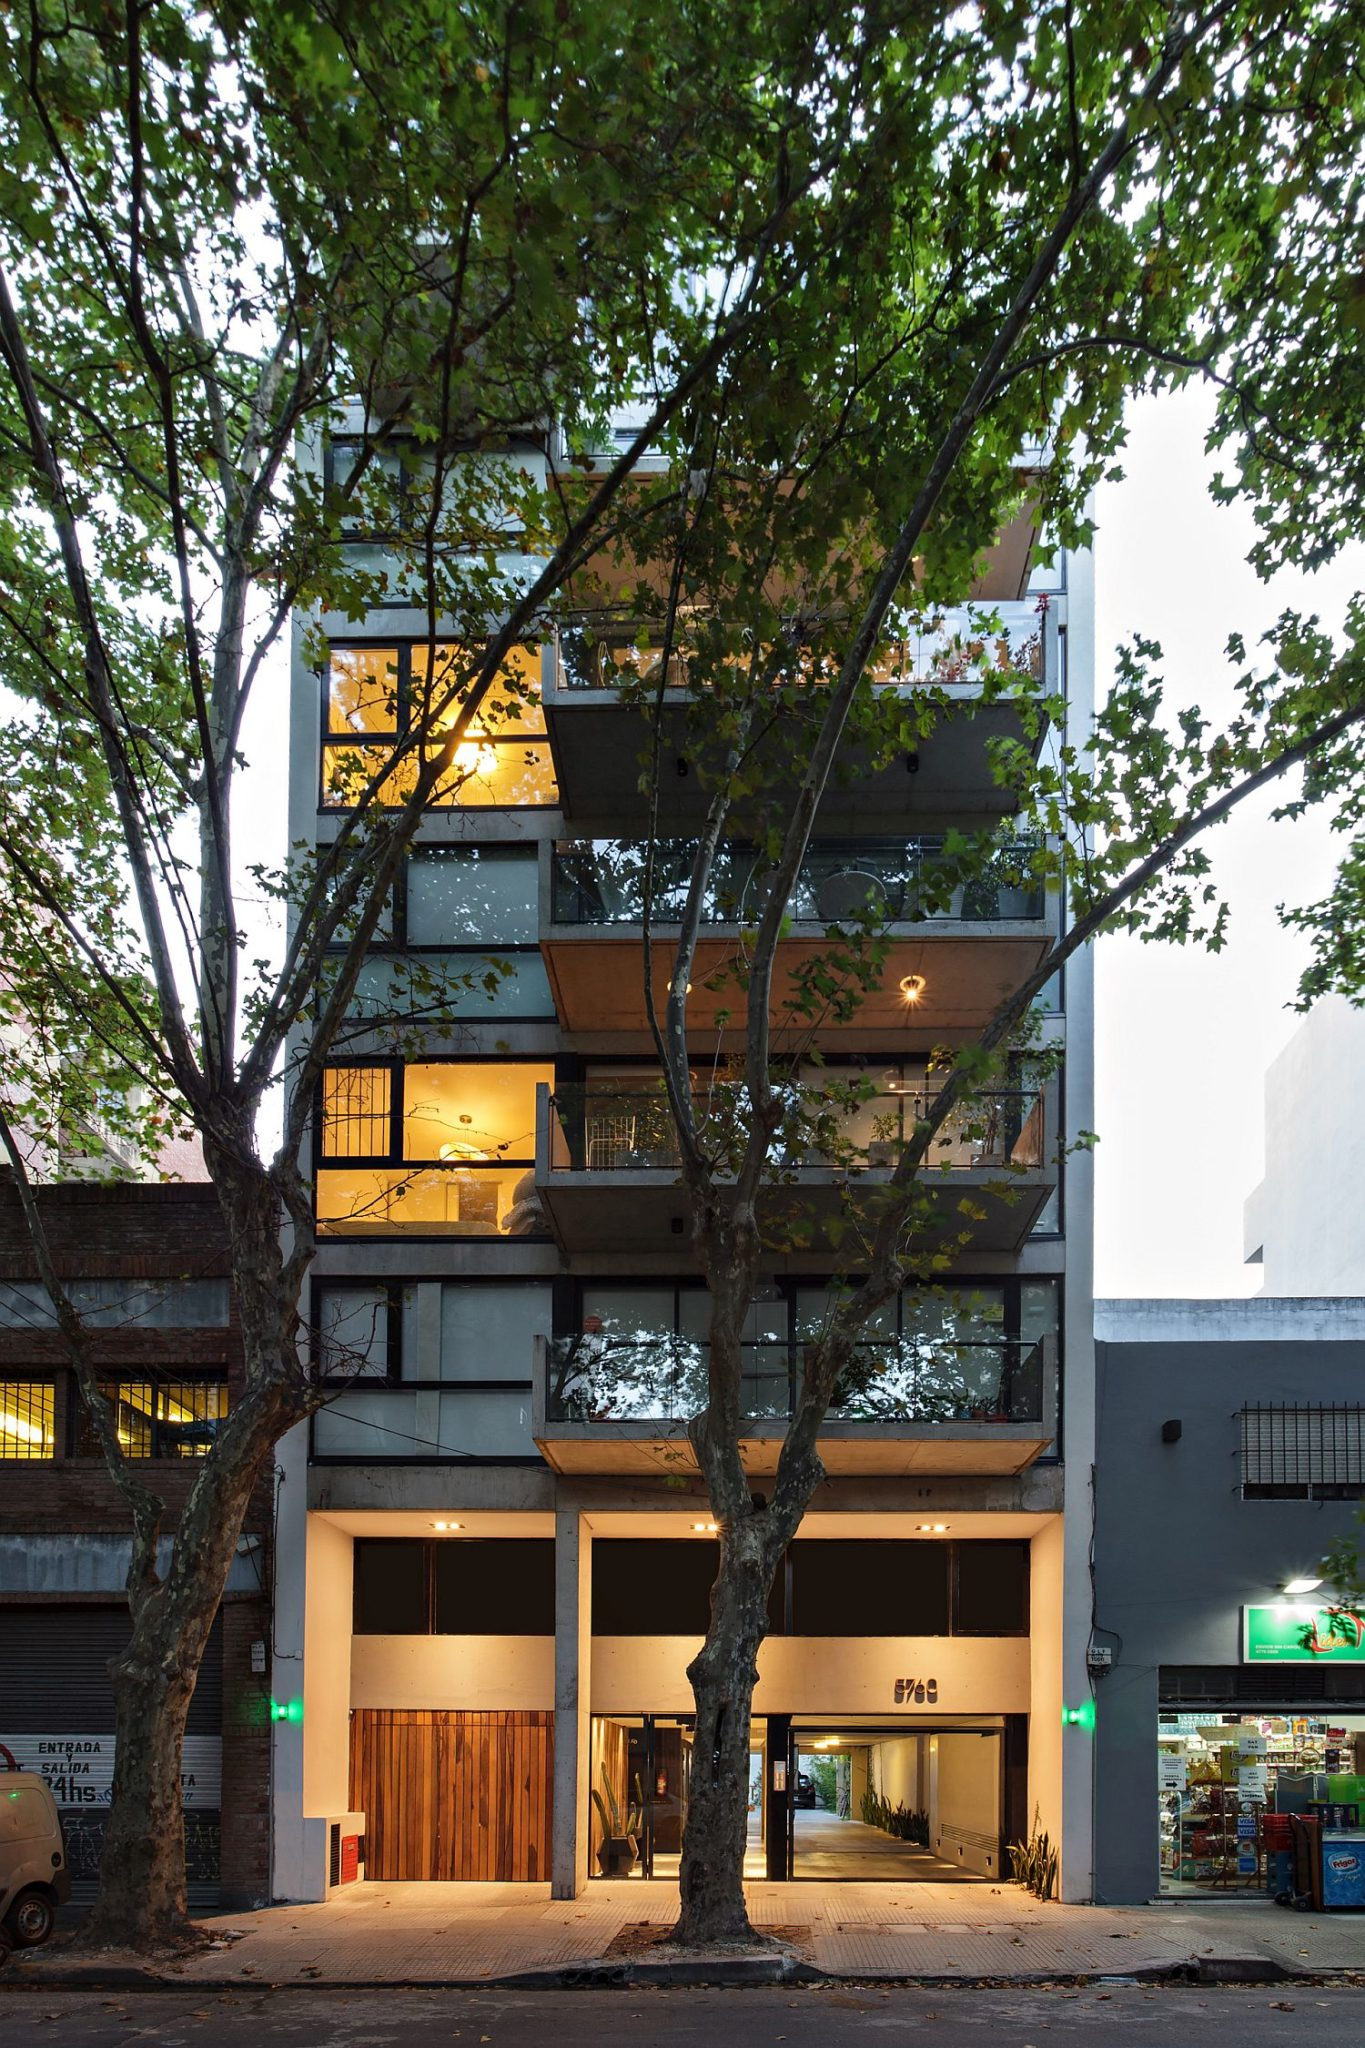 Large trees bring a small sense of privacy and greenery to the urban dwelling